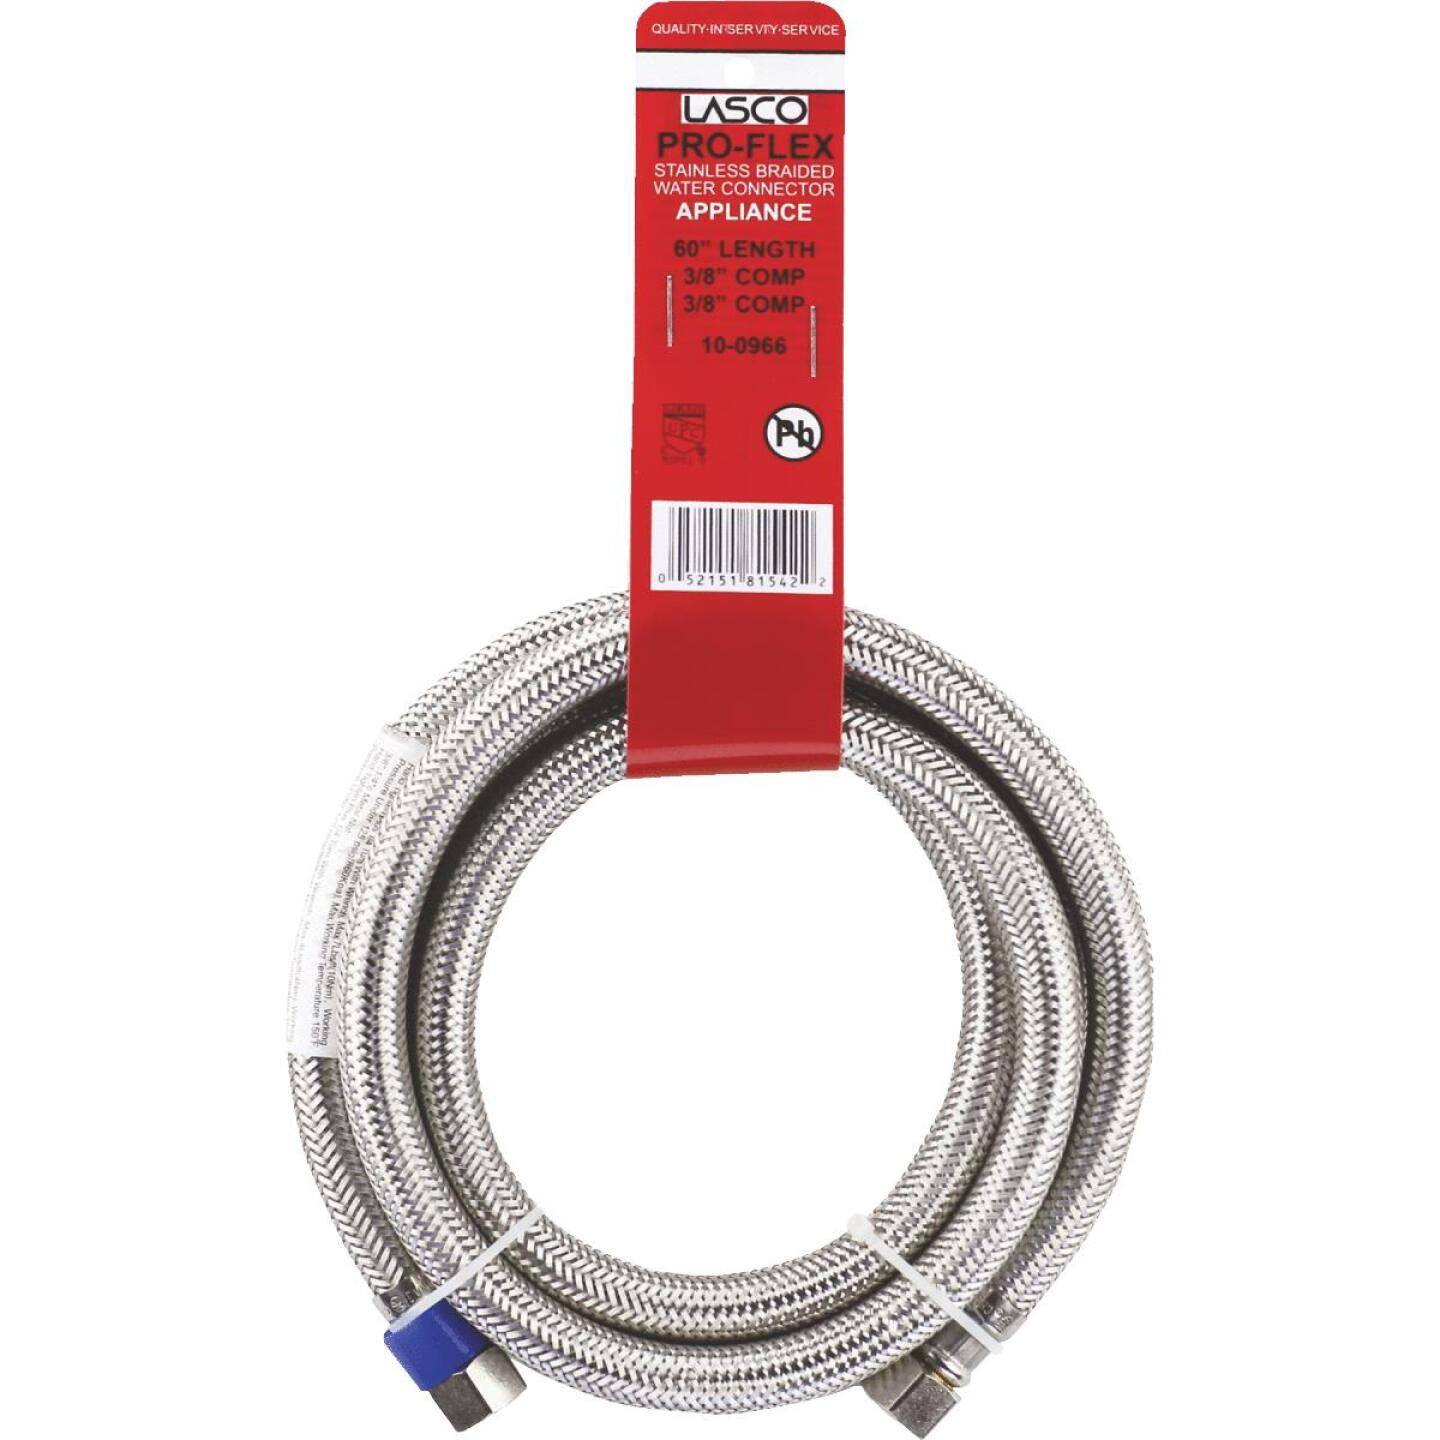 Lasco 3/8 In.C x 3/8 In.C x 60 In.L Braided Stainless Steel Flex Line Appliance Water Connector Image 2